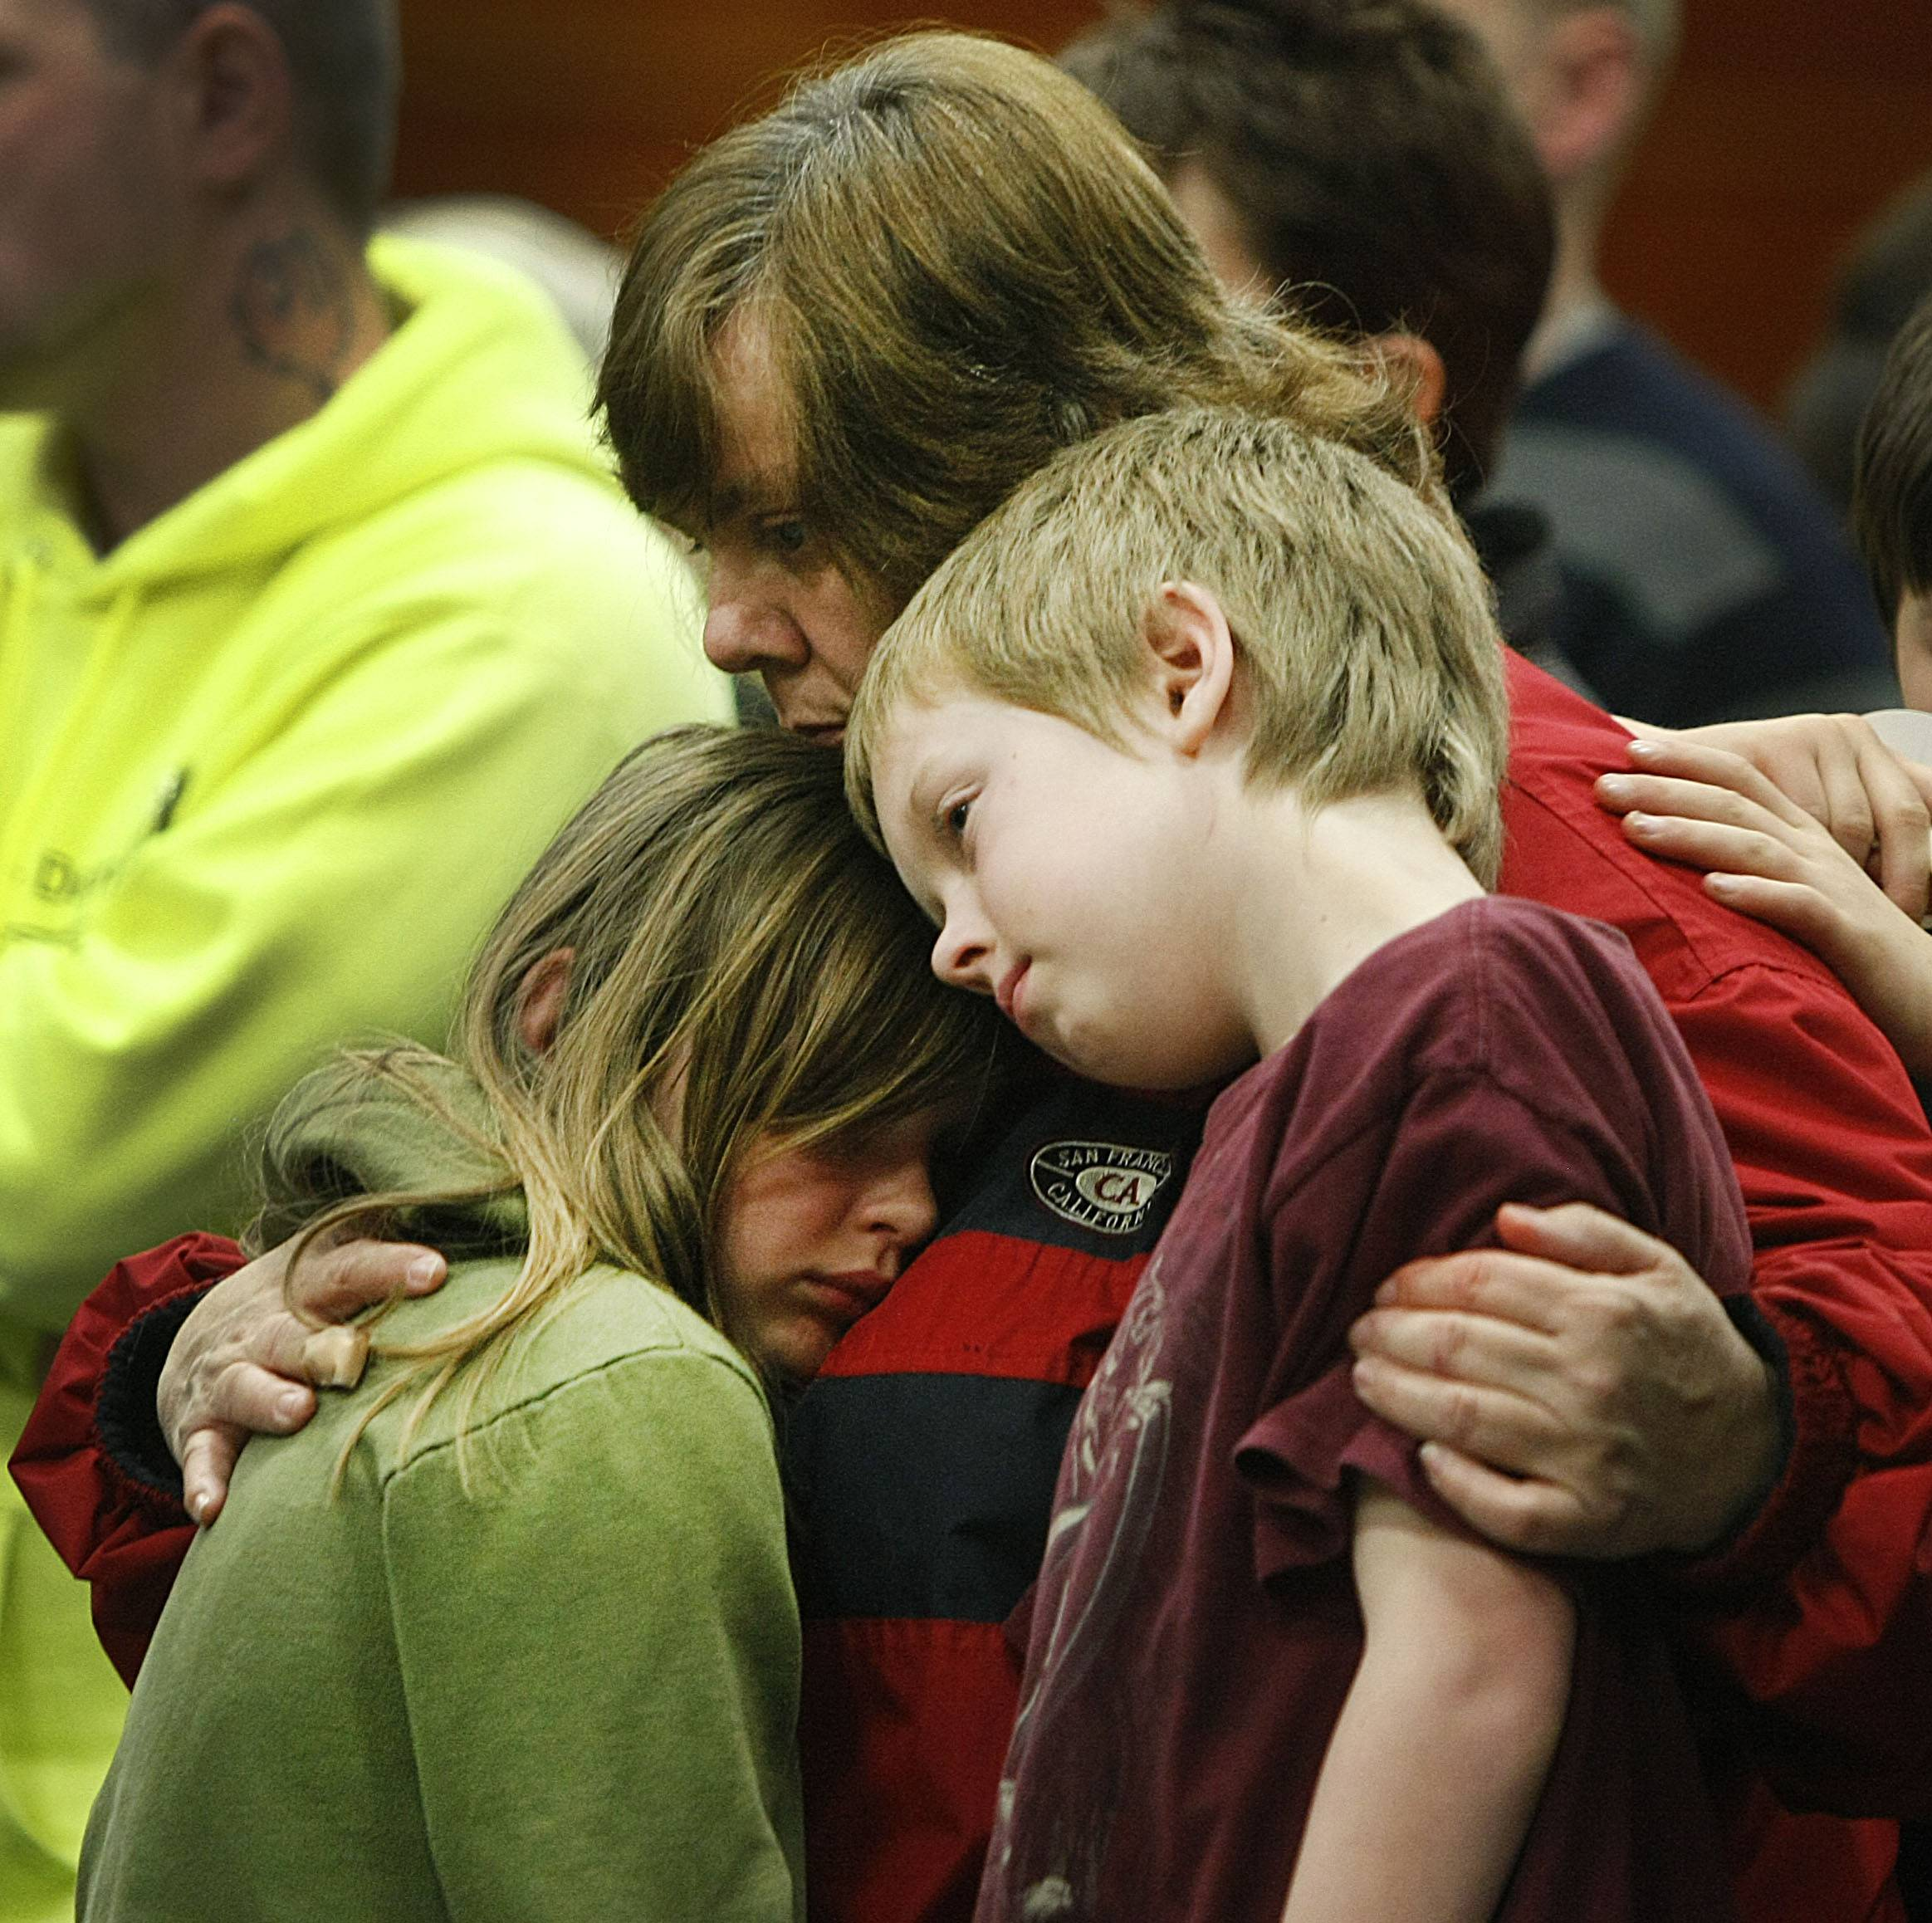 Members of the community embrace during a candlelight vigil at the Darrington Community Center, Saturday, April 5, 2014, in Darrington, Wash. A candlelight vigil was held two weeks after the deadly mudslide that hit Oso and took at least 30 victims.